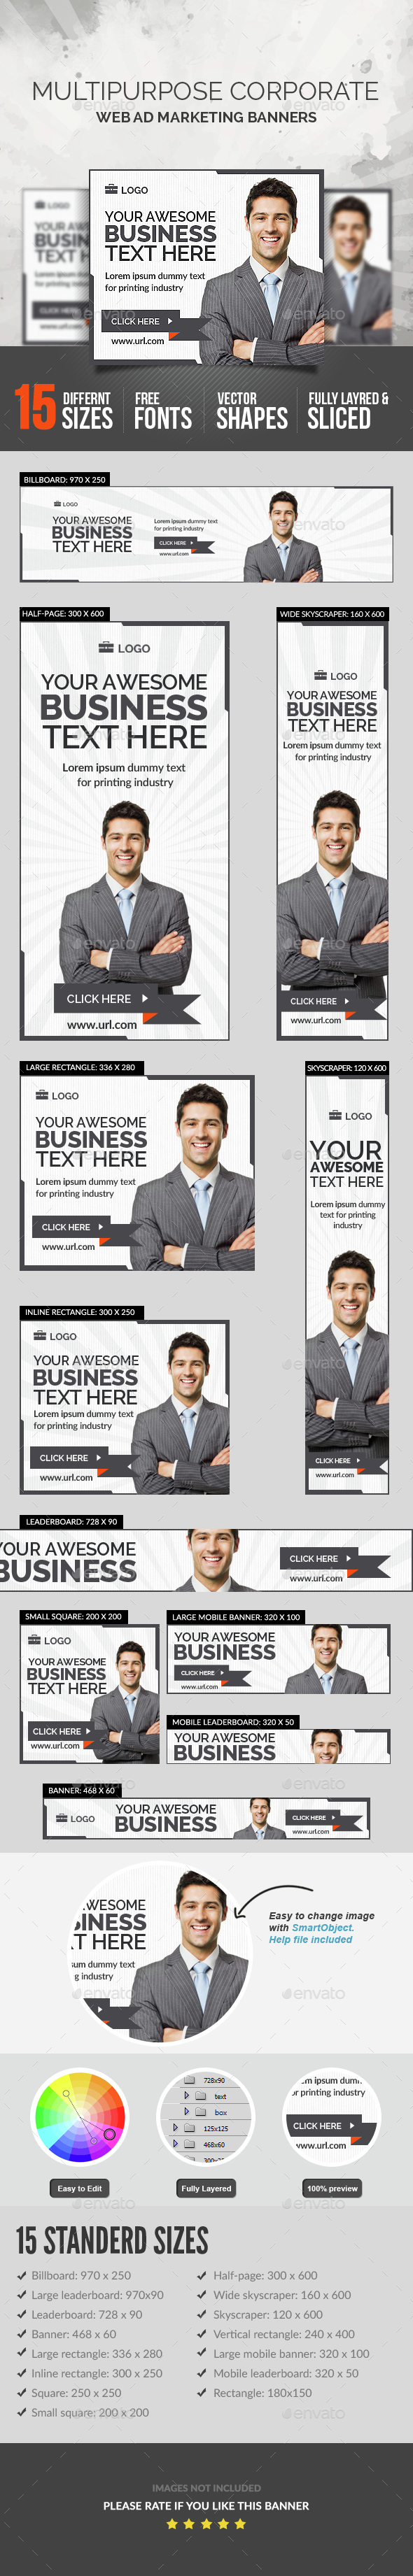 Multipurpose Corporate Banner - Banners & Ads Web Elements